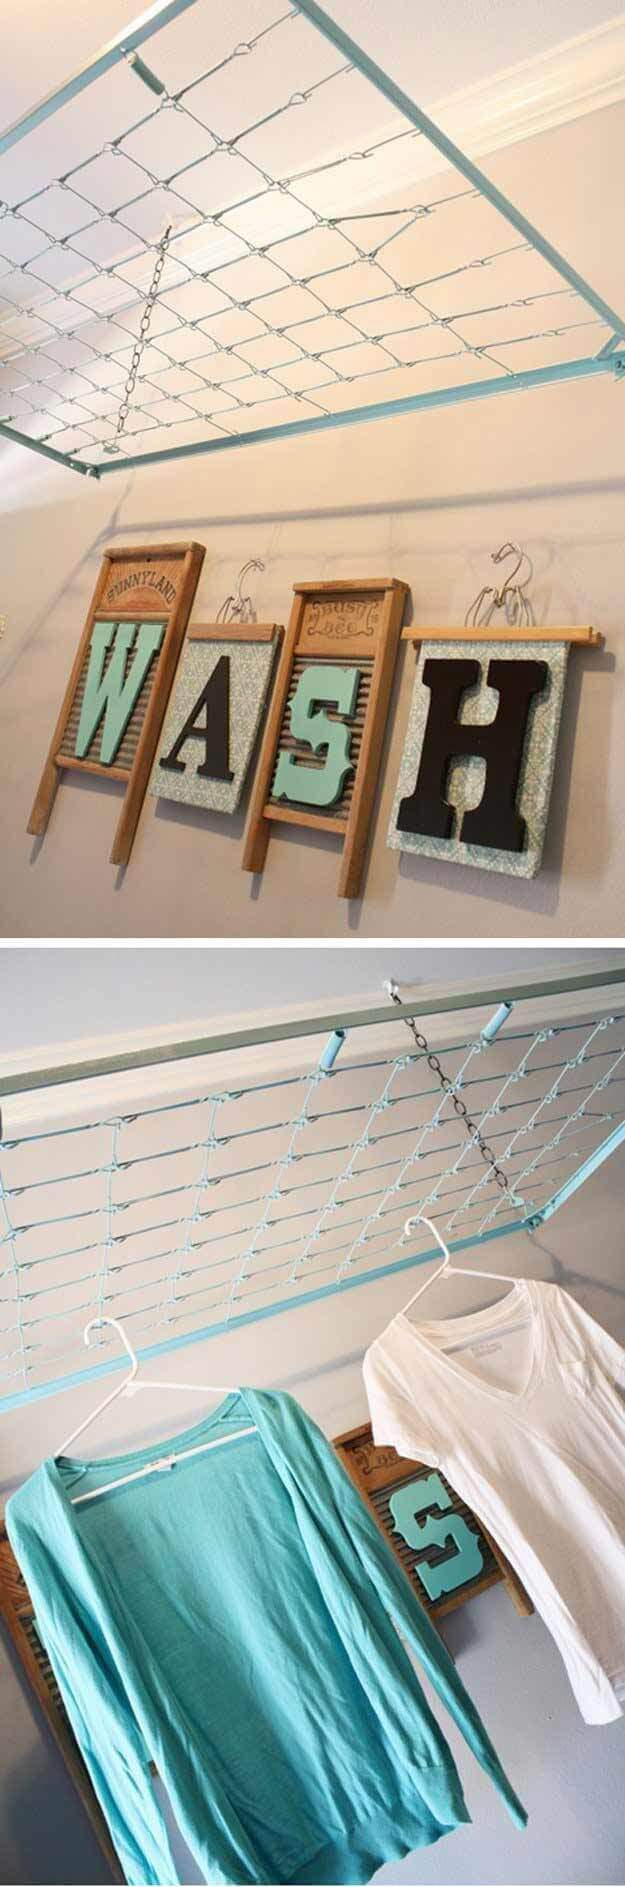 25 beautiful vintage laundry room decor ideas design for rustic style do it yourself washboard clean wall art solutioingenieria Image collections